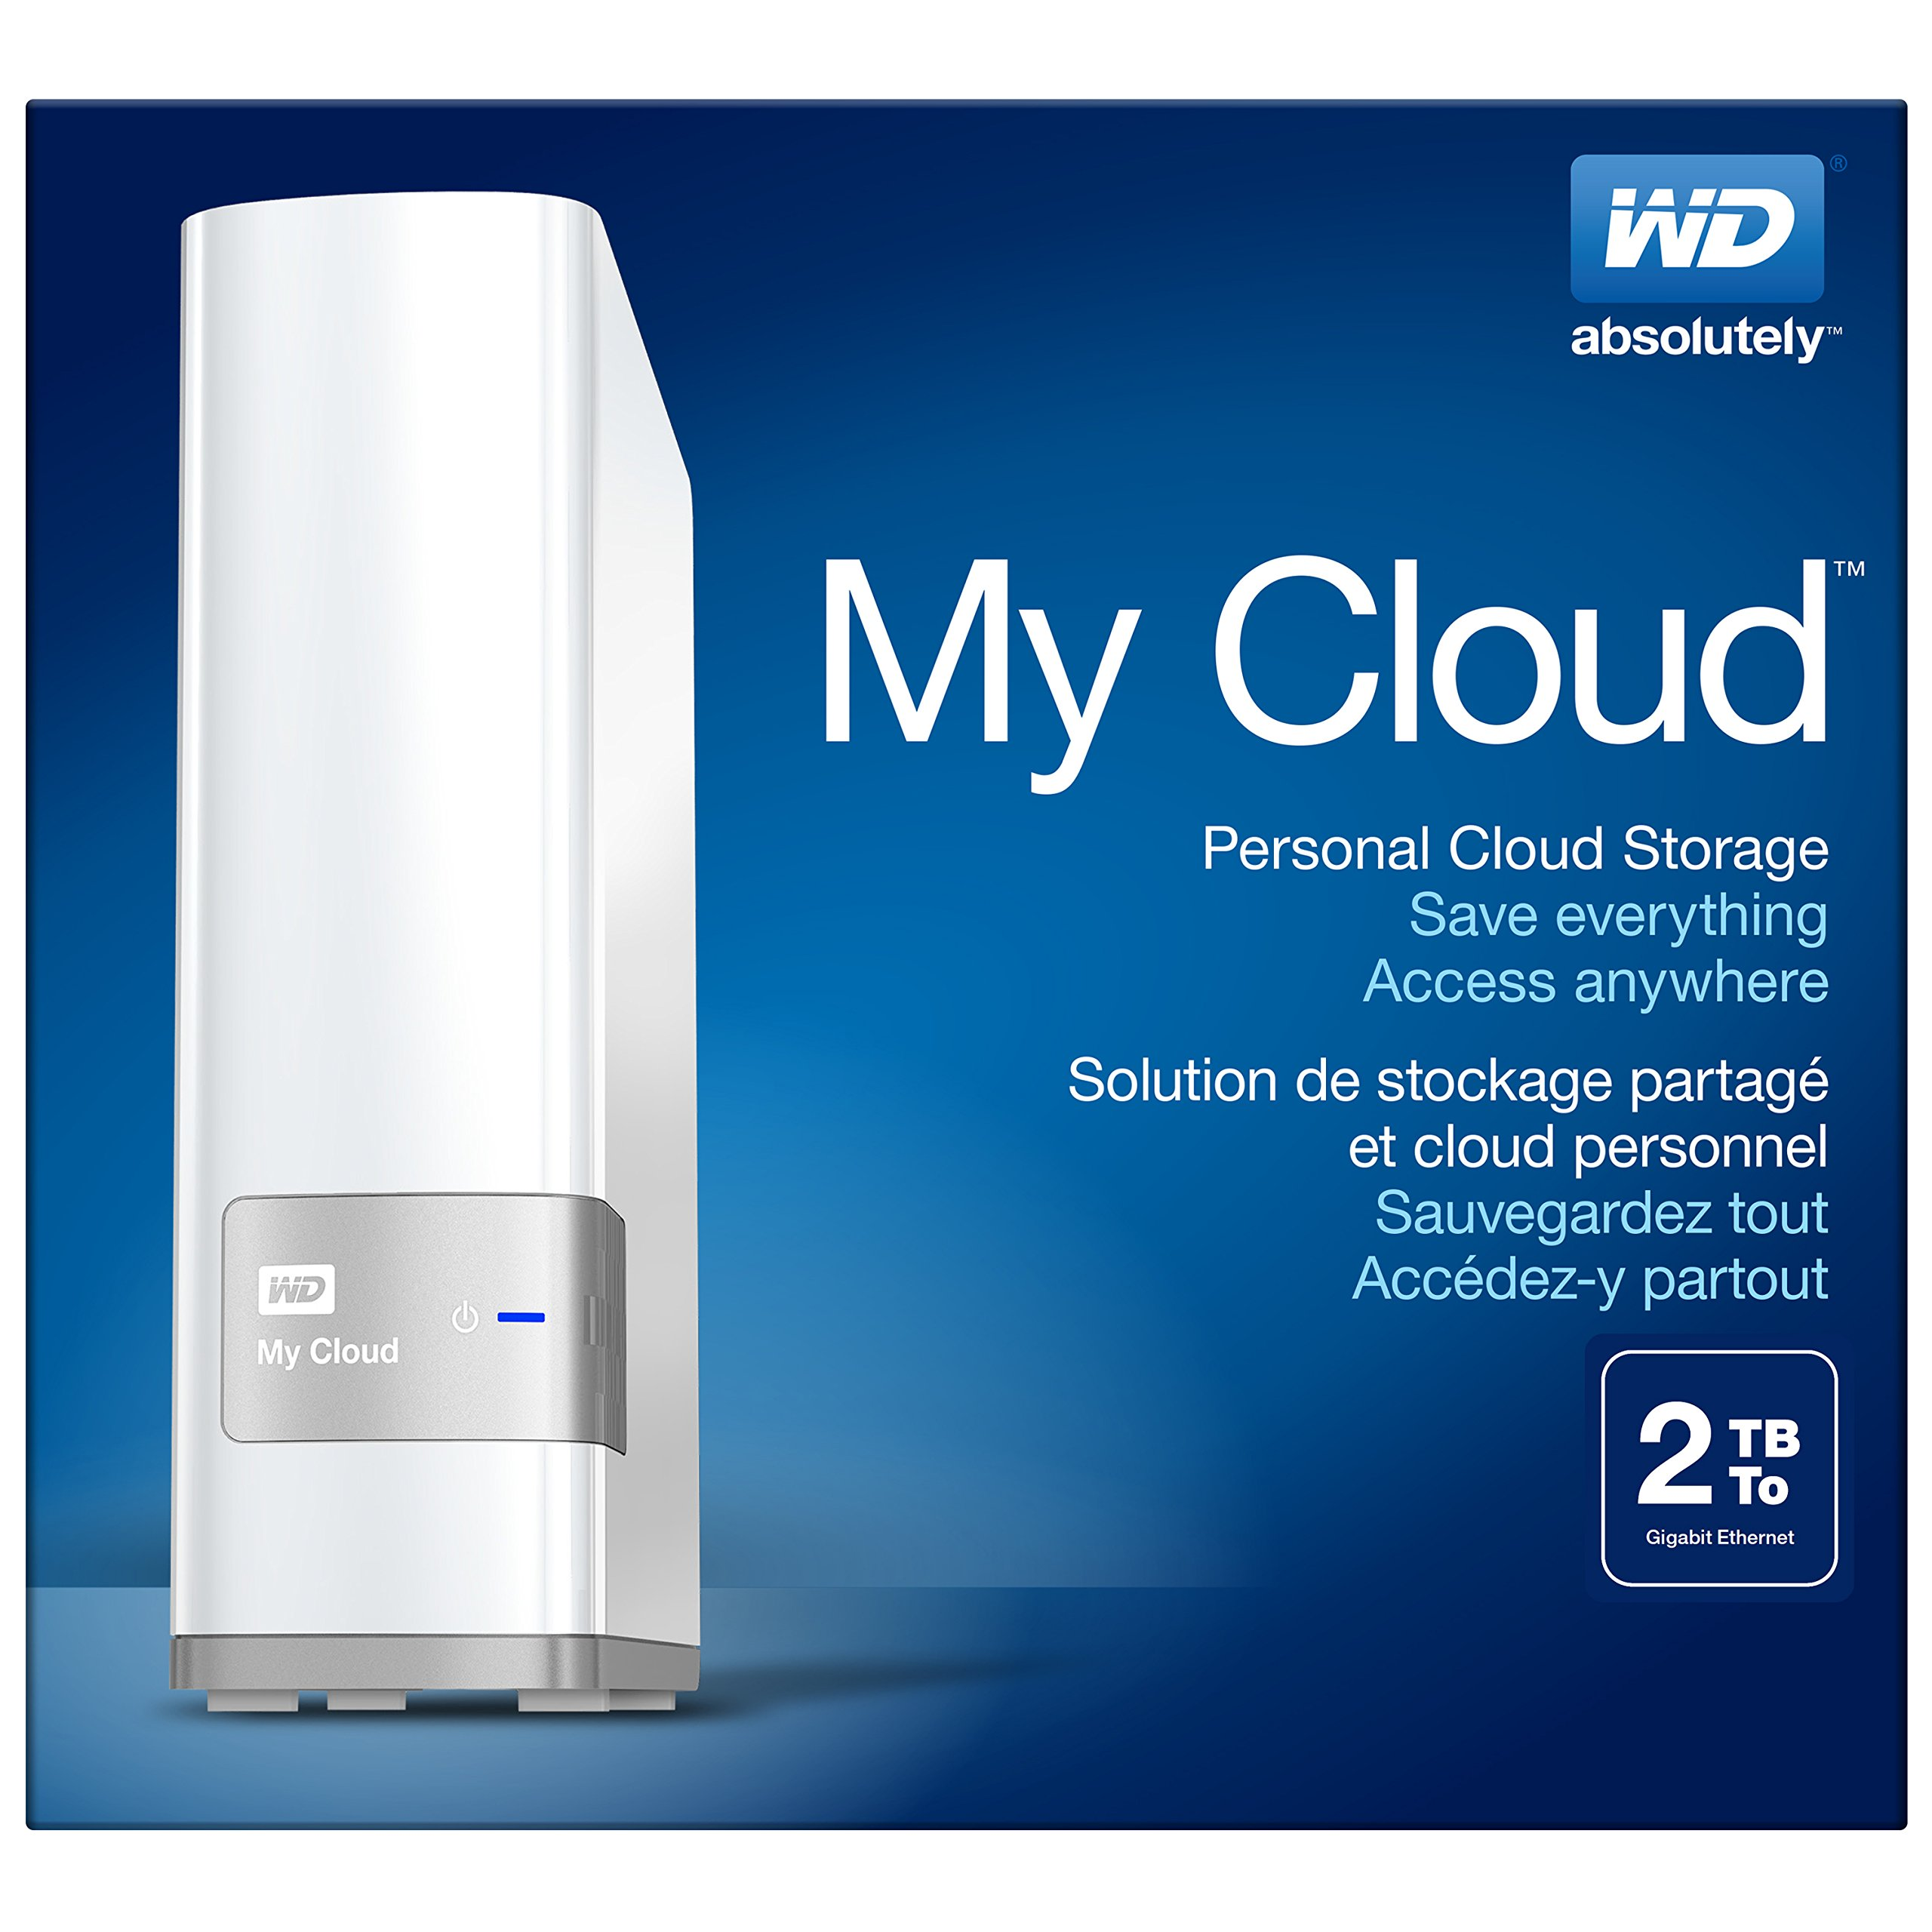 WD 2TB My Cloud Personal Network Attached Storage - NAS - WDBCTL0020HWT-NESN by Western Digital (Image #6)